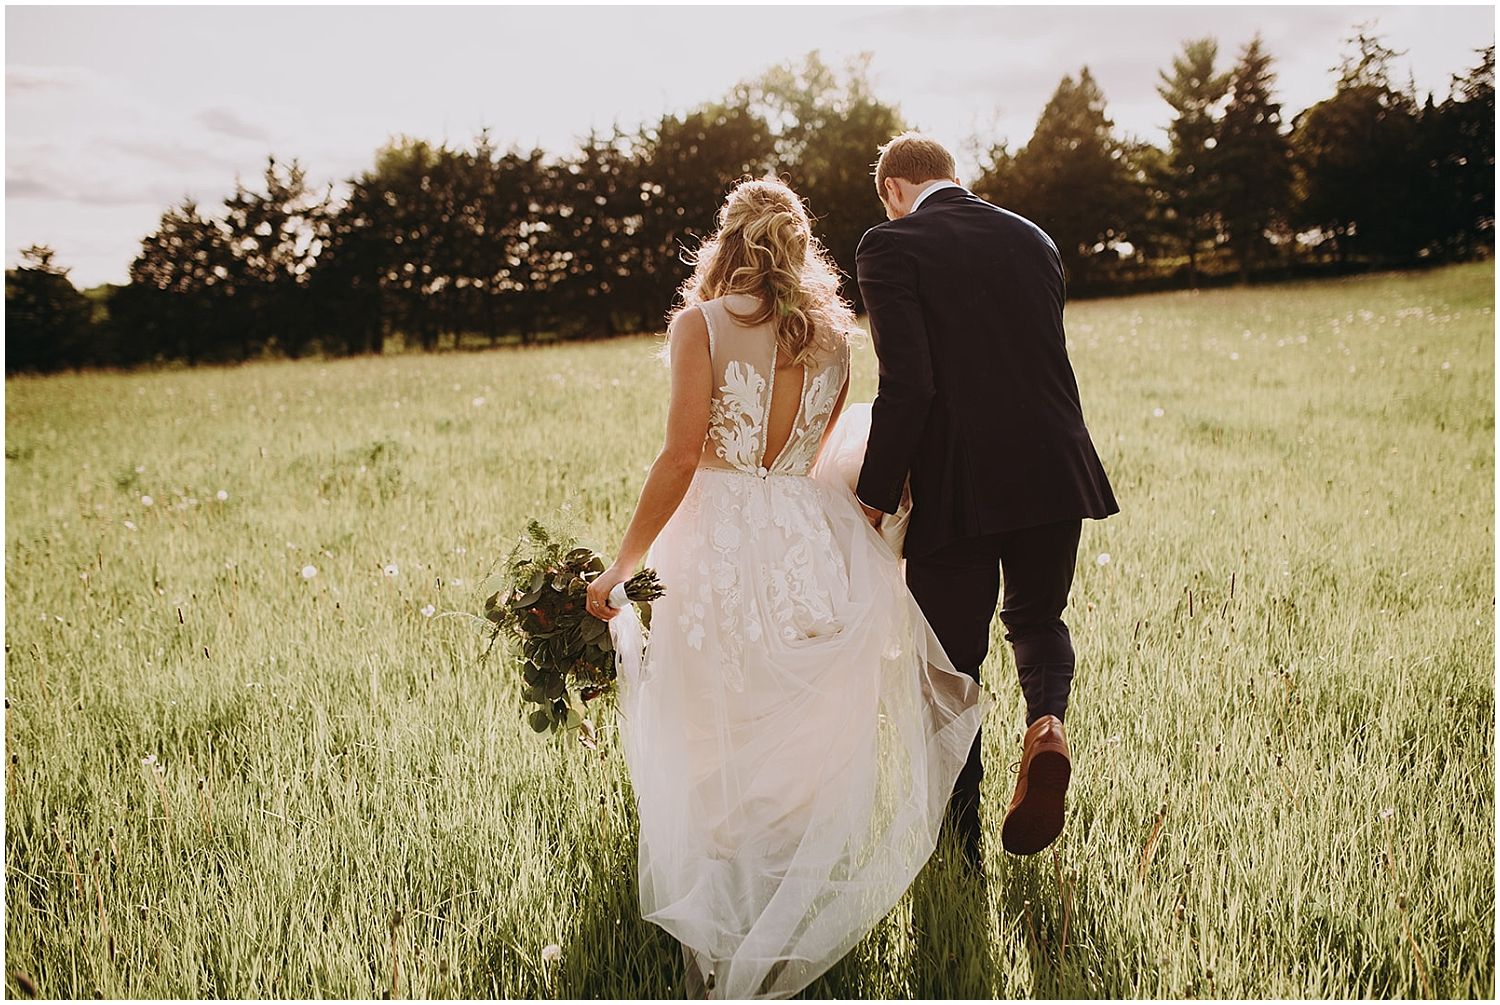 the bride and groom holding hands in the field